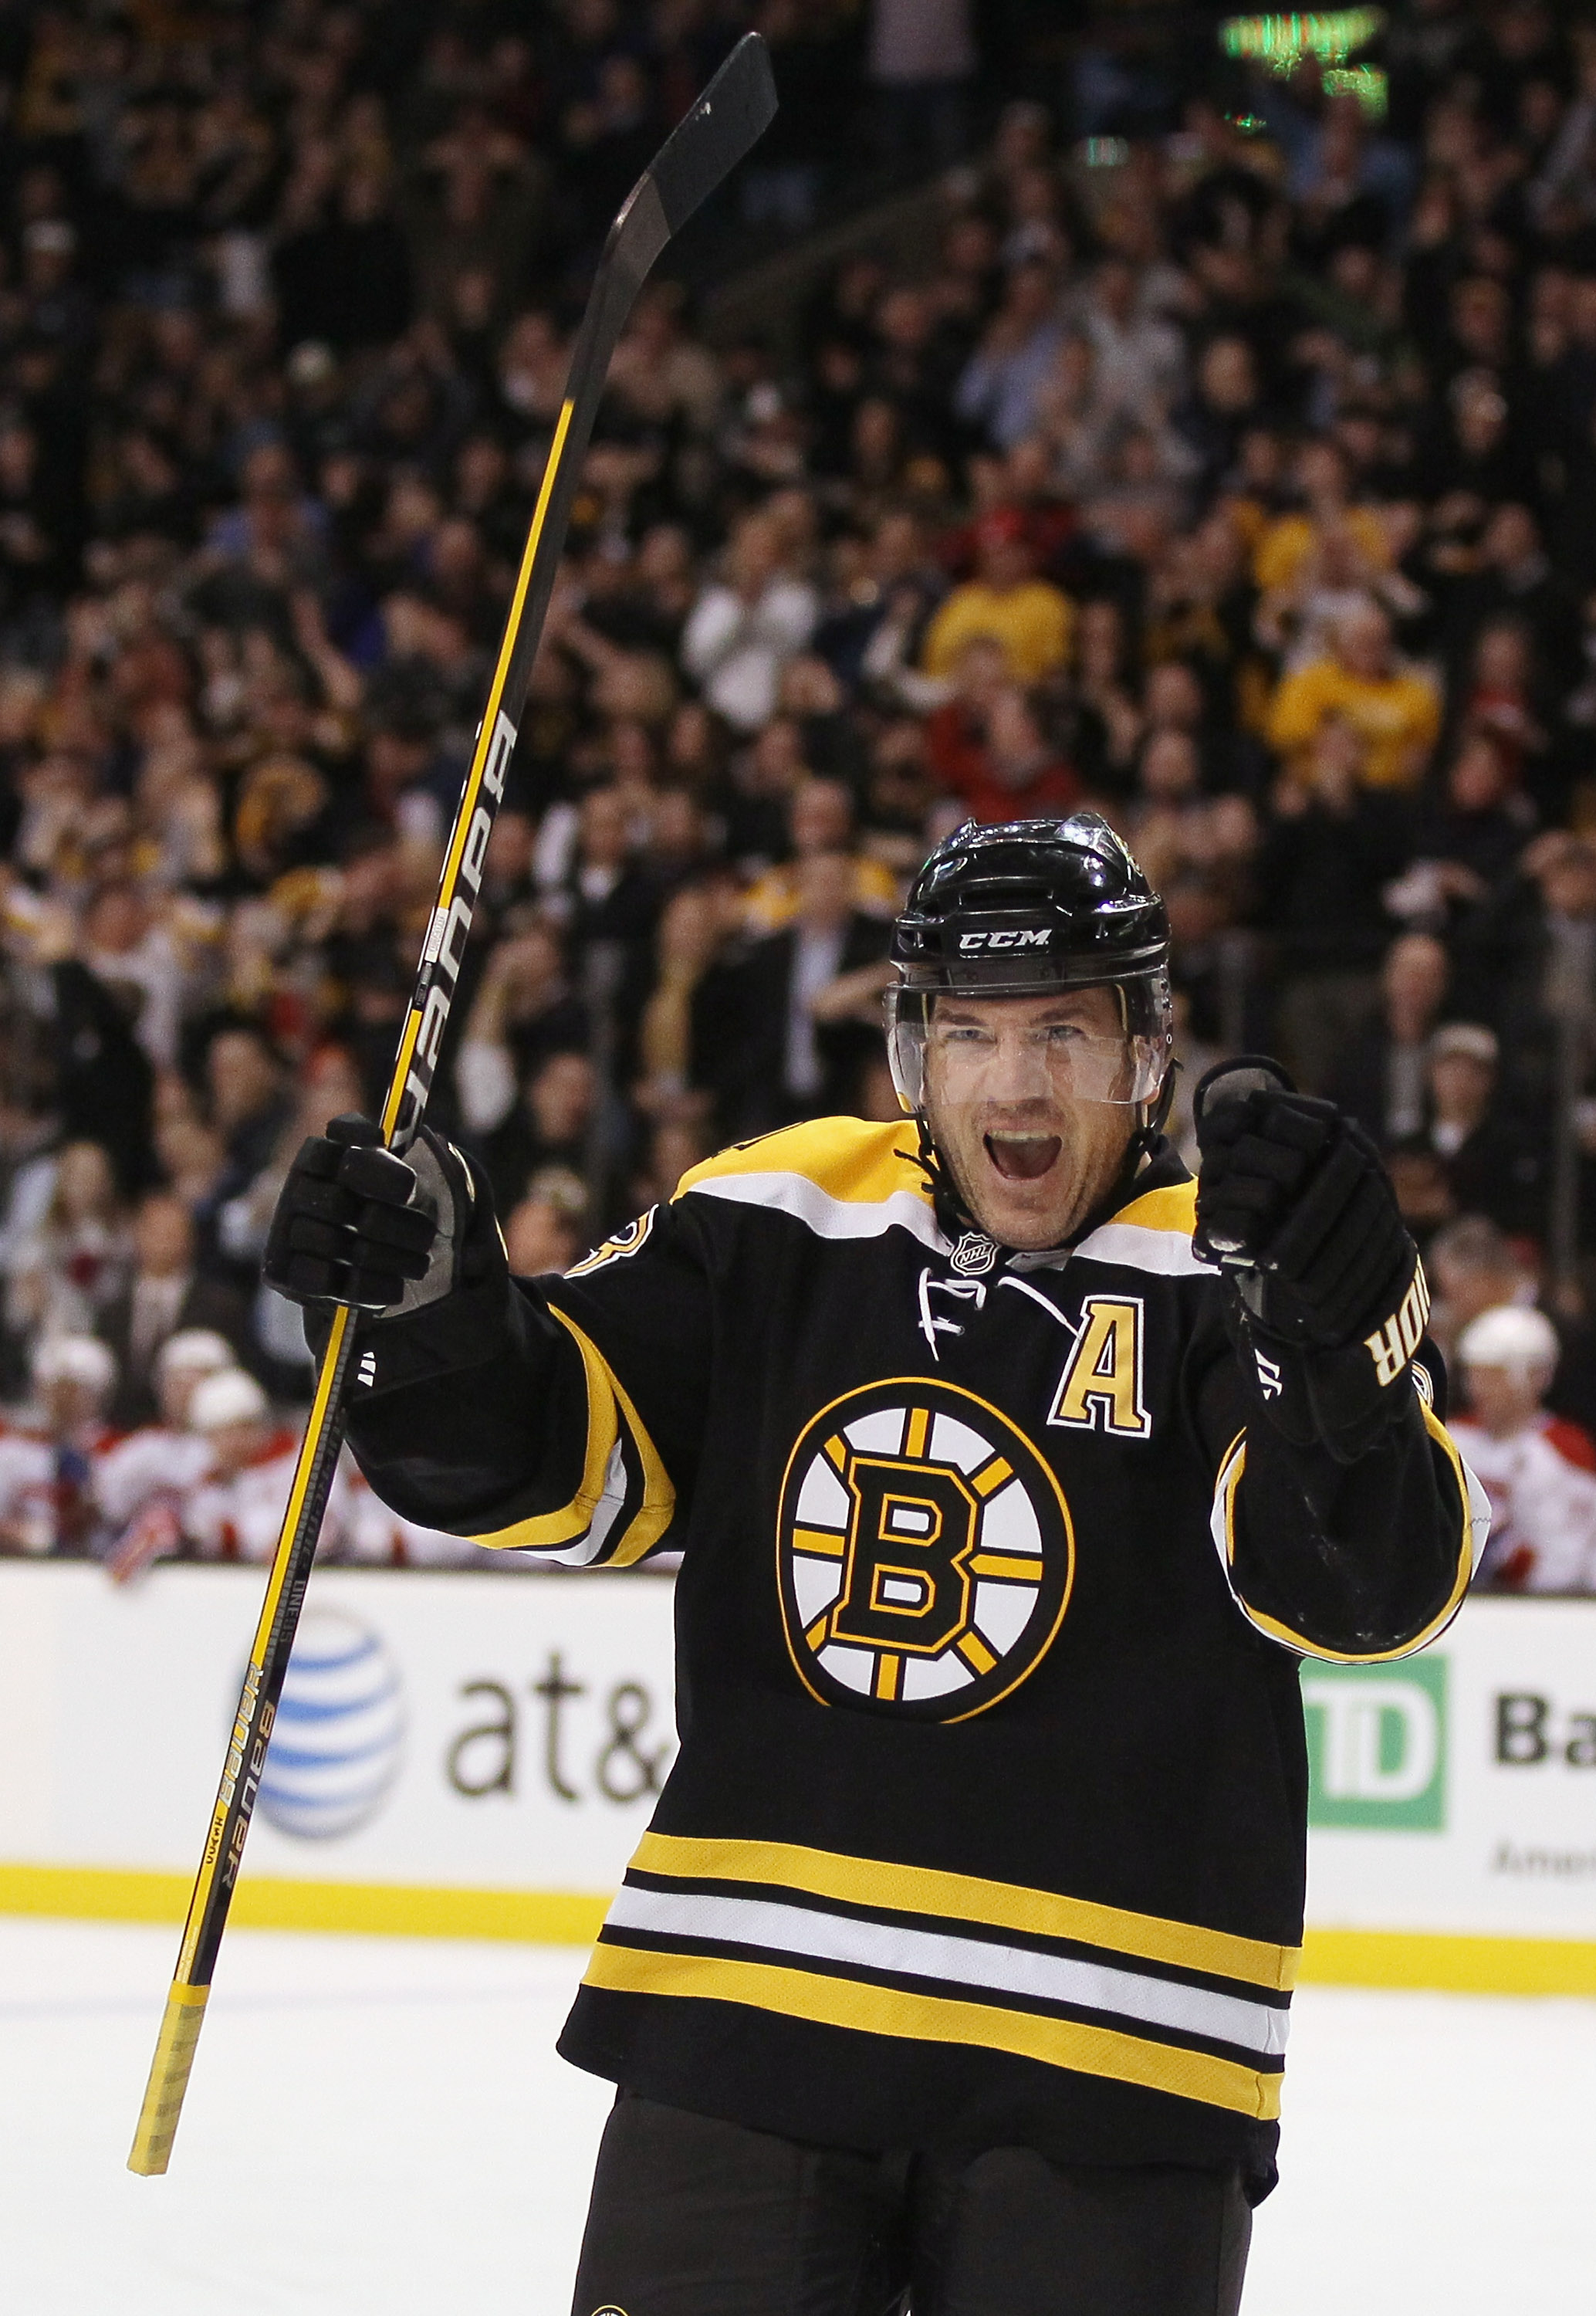 BOSTON, MA - FEBRUARY 09:  Mark Recchi #28 of the Boston Bruins celebrates teammate Brad Marchand's goal in the first period against the Montreal Canadiens on February 9, 2011 at the TD Garden in Boston, Massachusetts.  (Photo by Elsa/Getty Images)